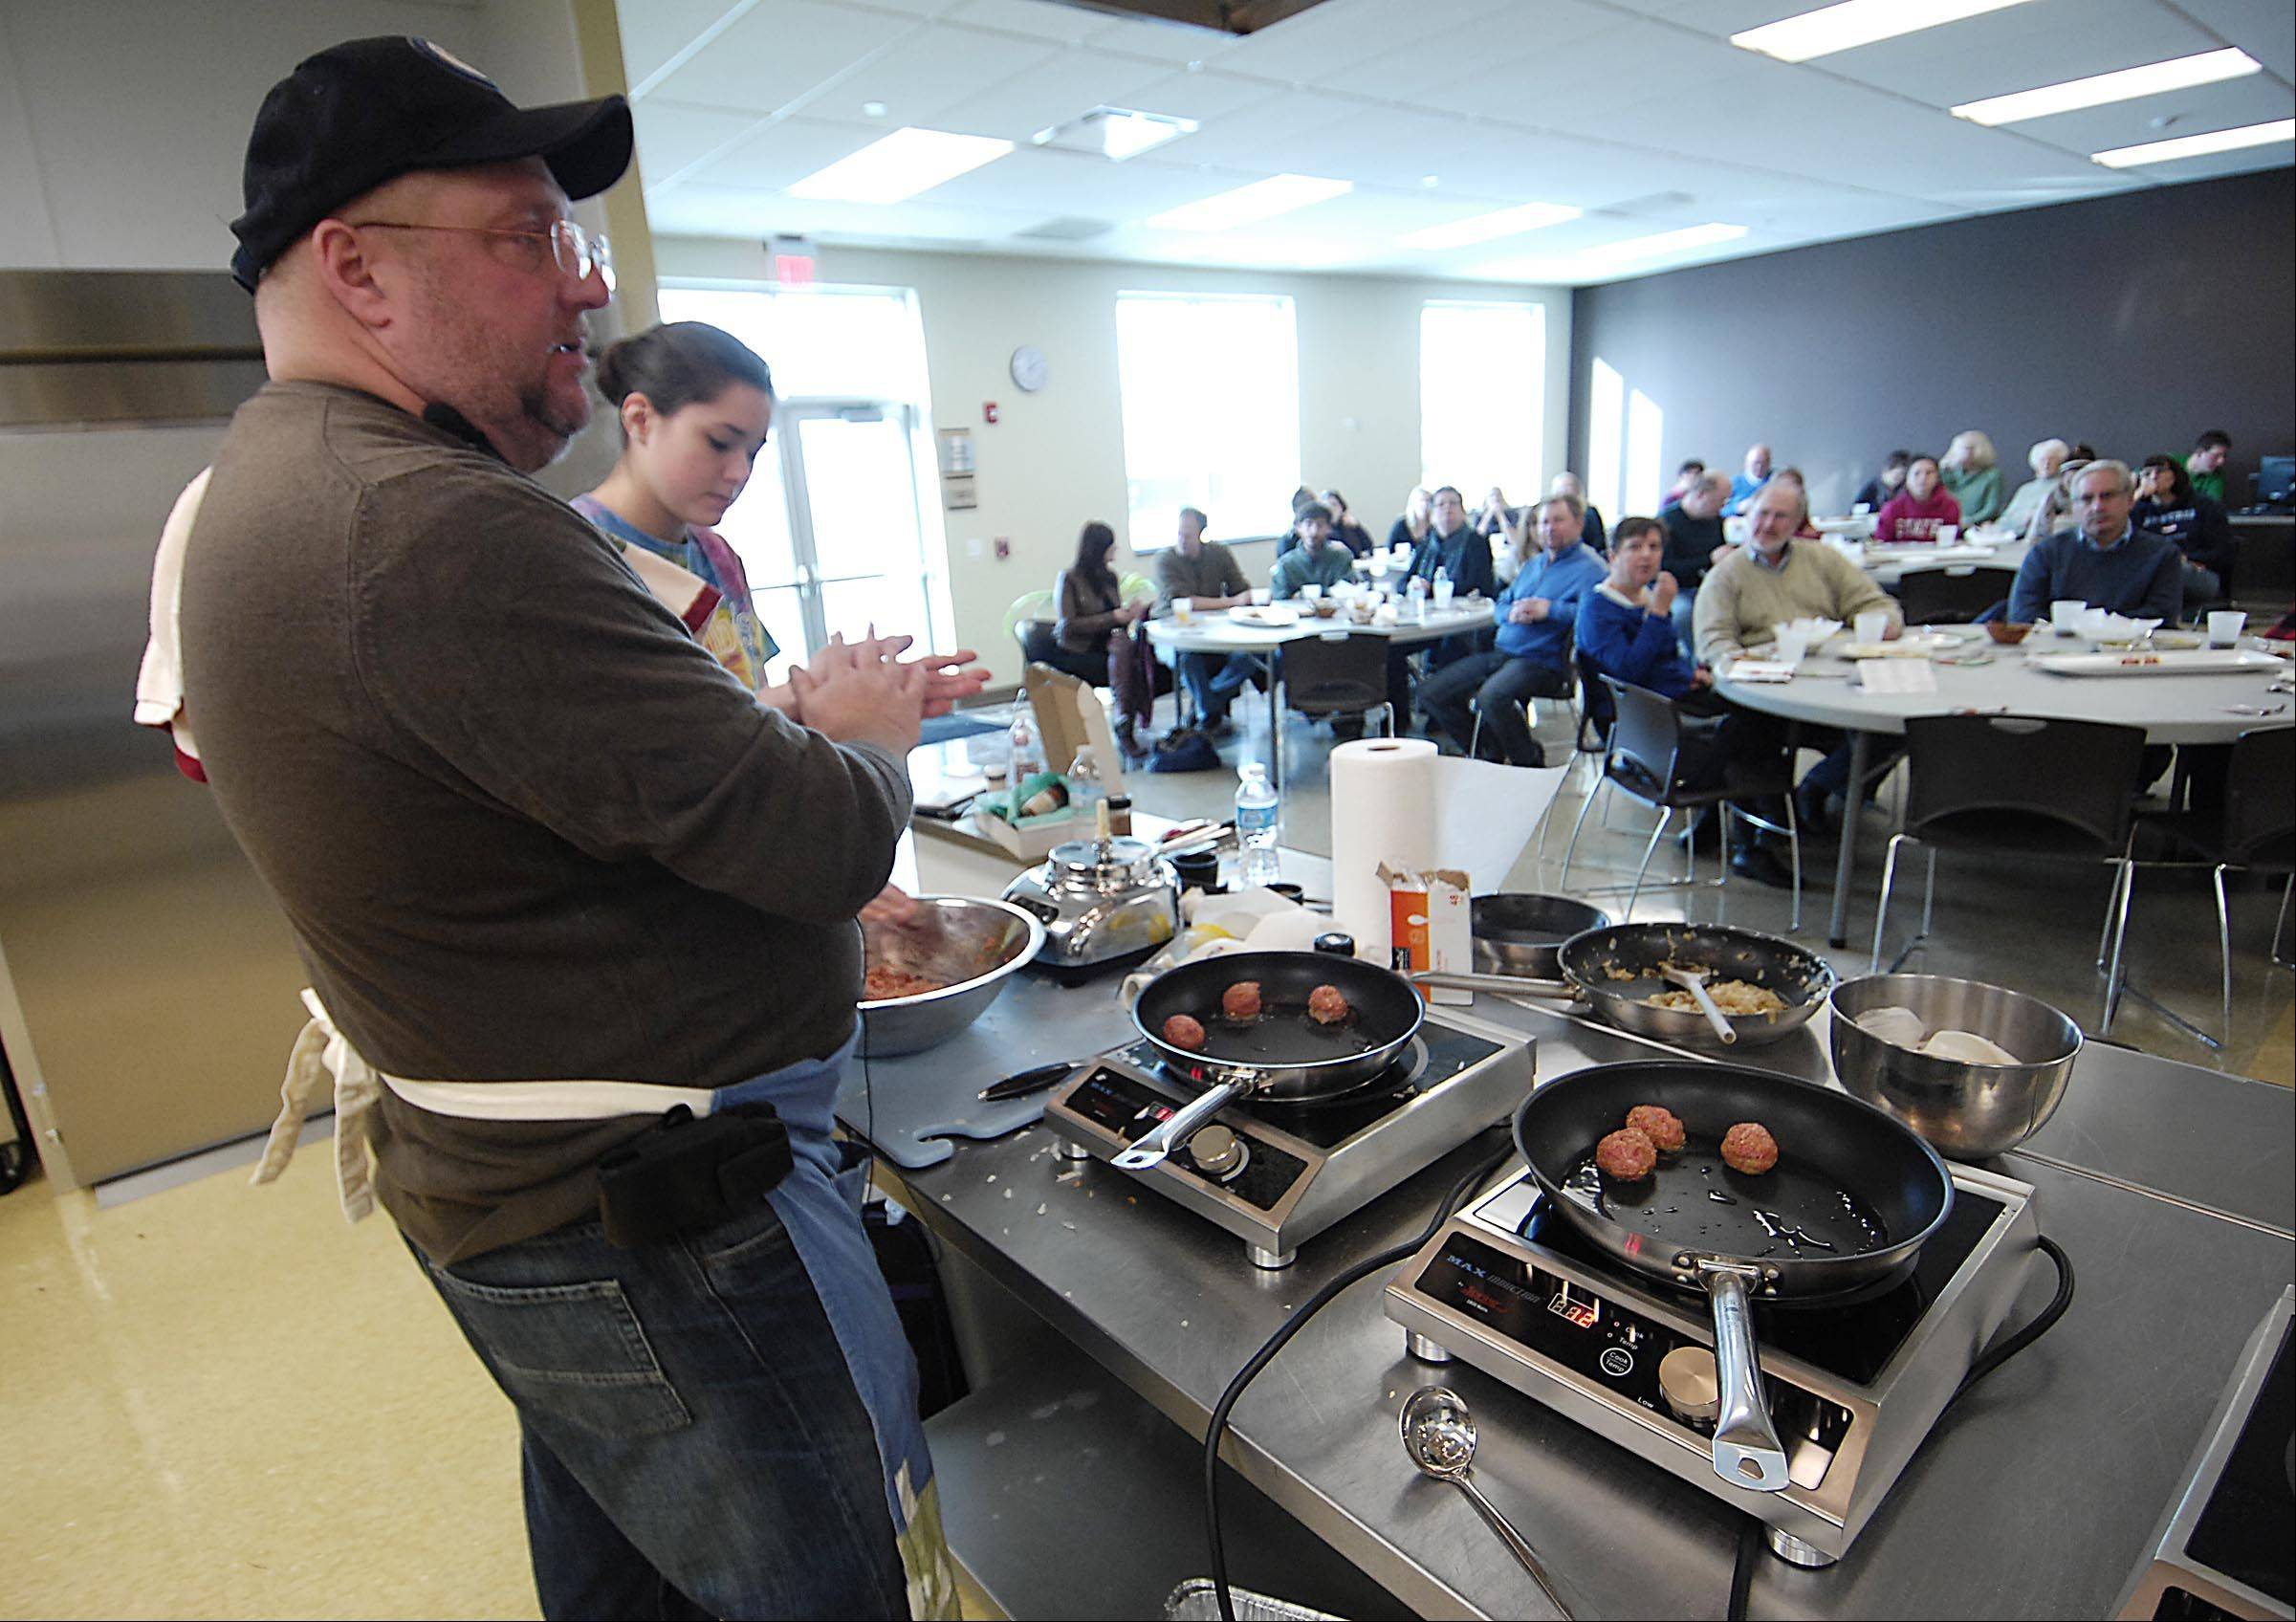 With an assist from Steffany Hagen of Elgin, Daily Herald Cook of the Year Dan Rich makes football-friendly meatballs during a Super Bowl snacks demonstration at the Northern Illinois Food Bank in Geneva.